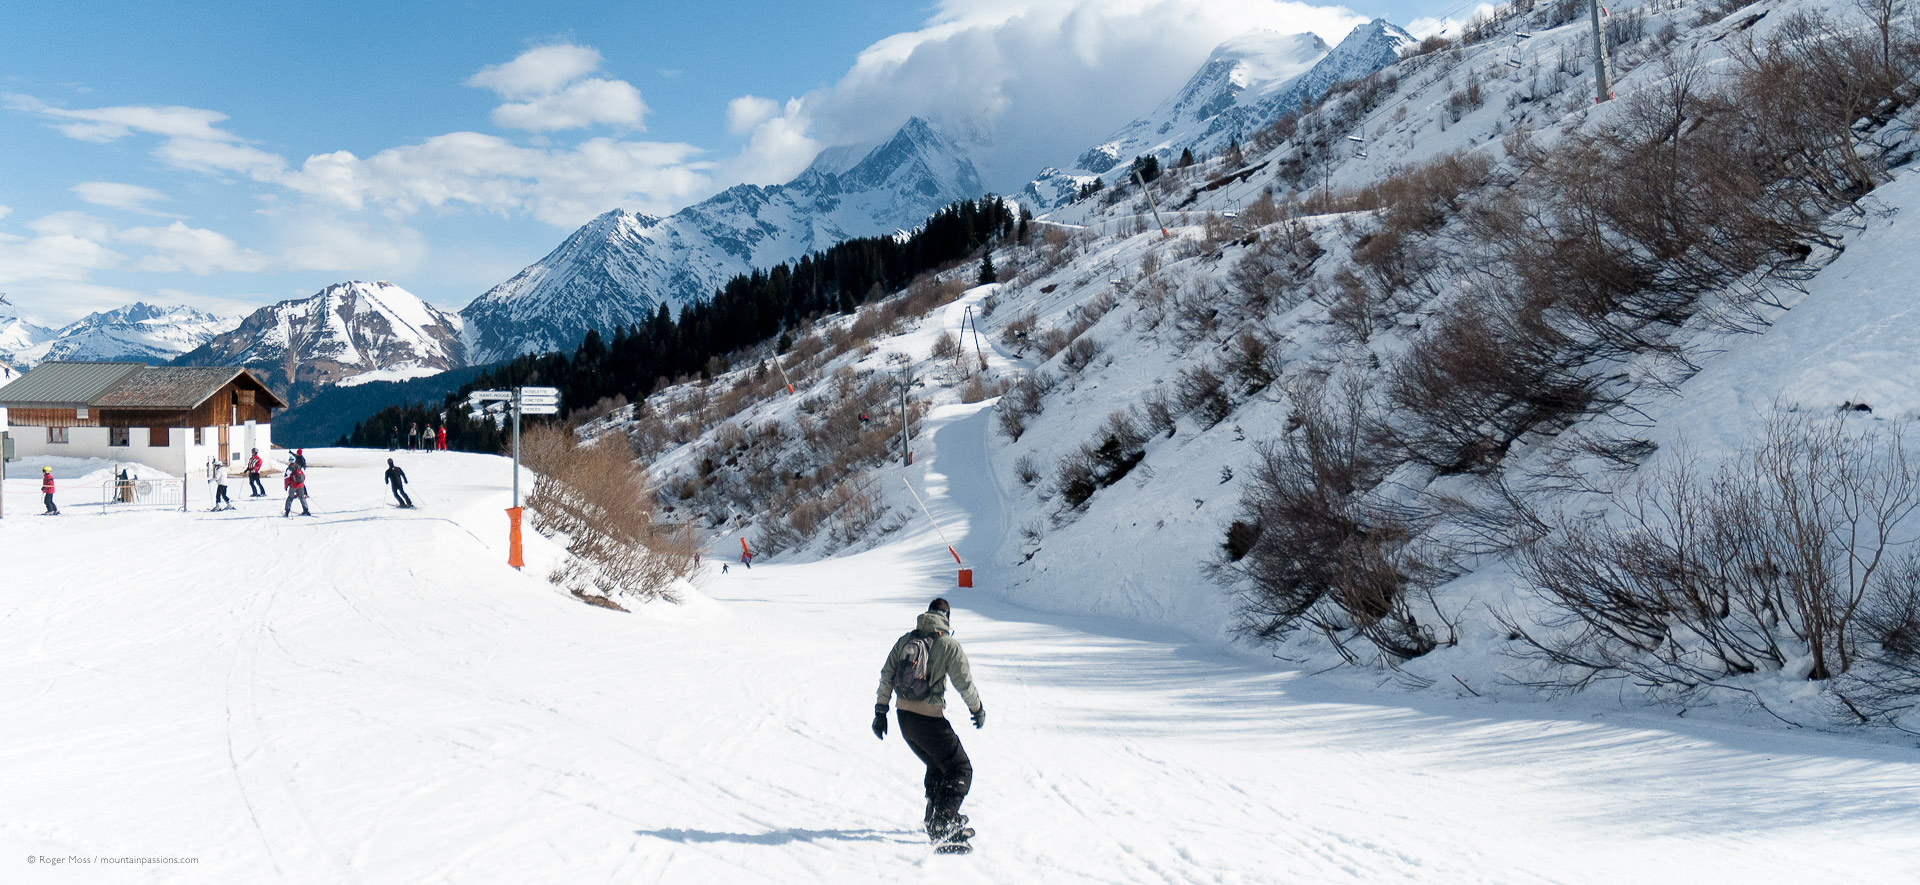 Snowboarder and skiers at junction of pistes with mountain background.